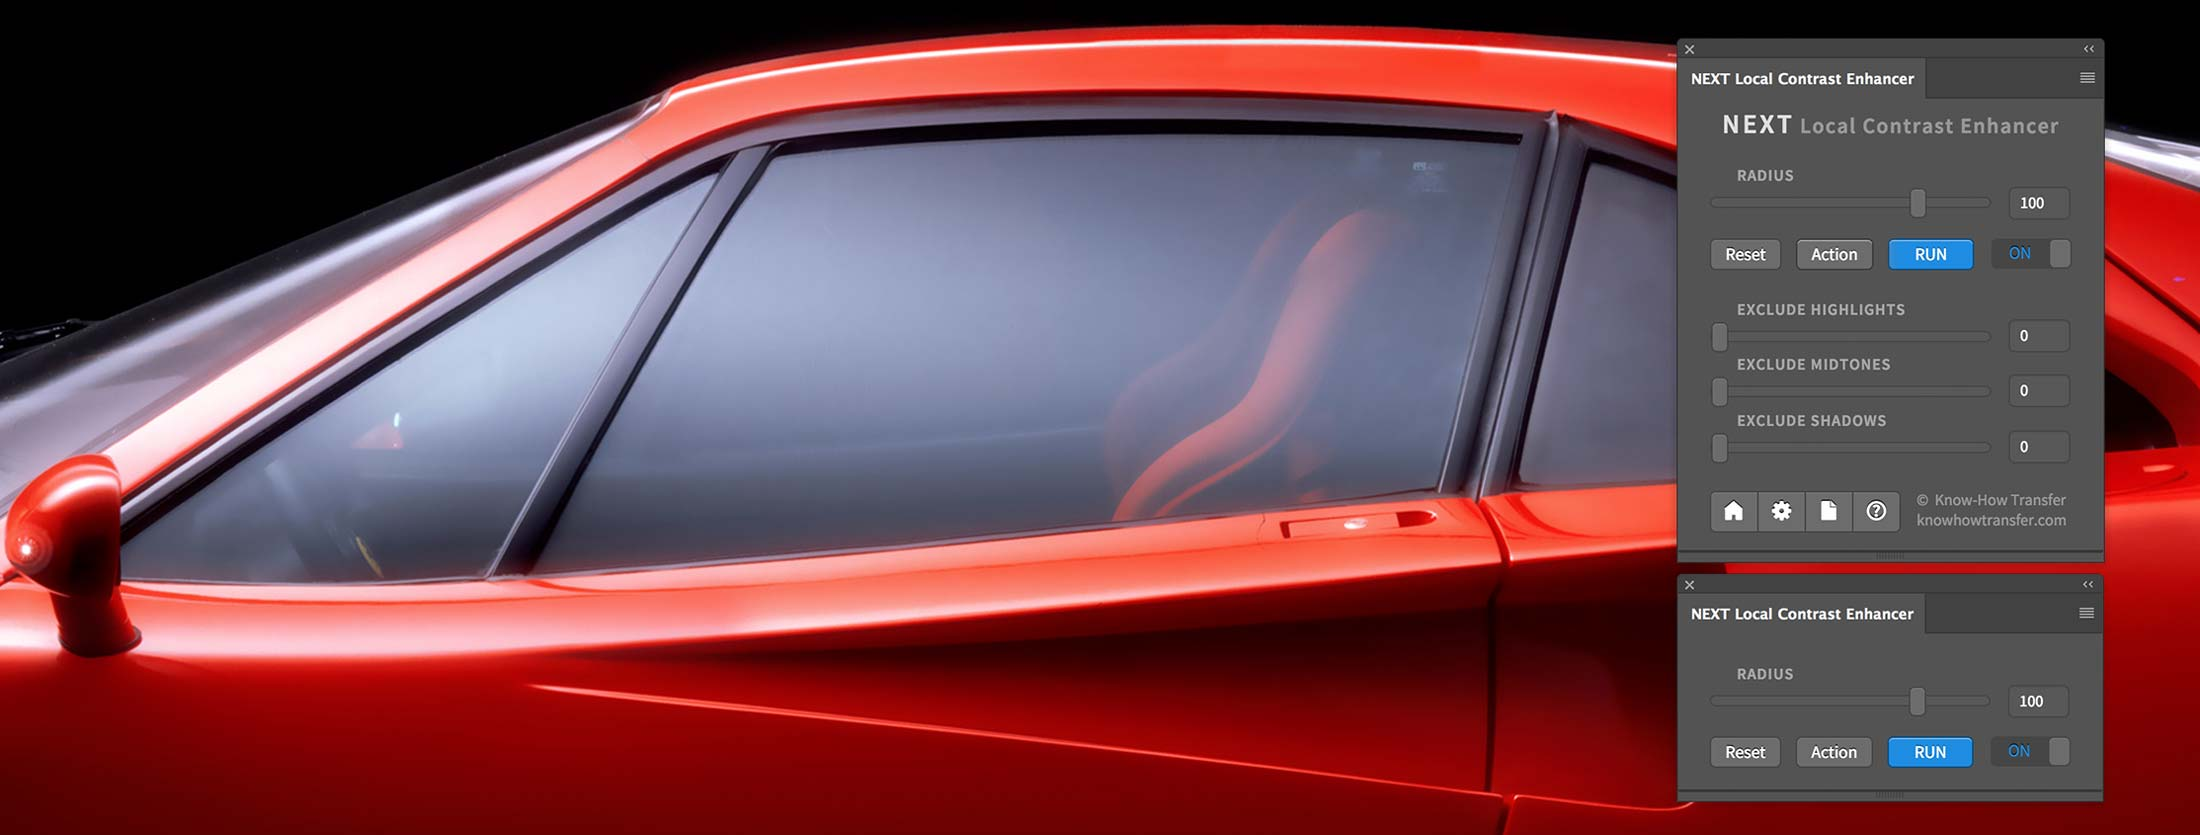 NEXT Local Contrast Enhancer Panel in compact and extended mode with a Ferrari F40